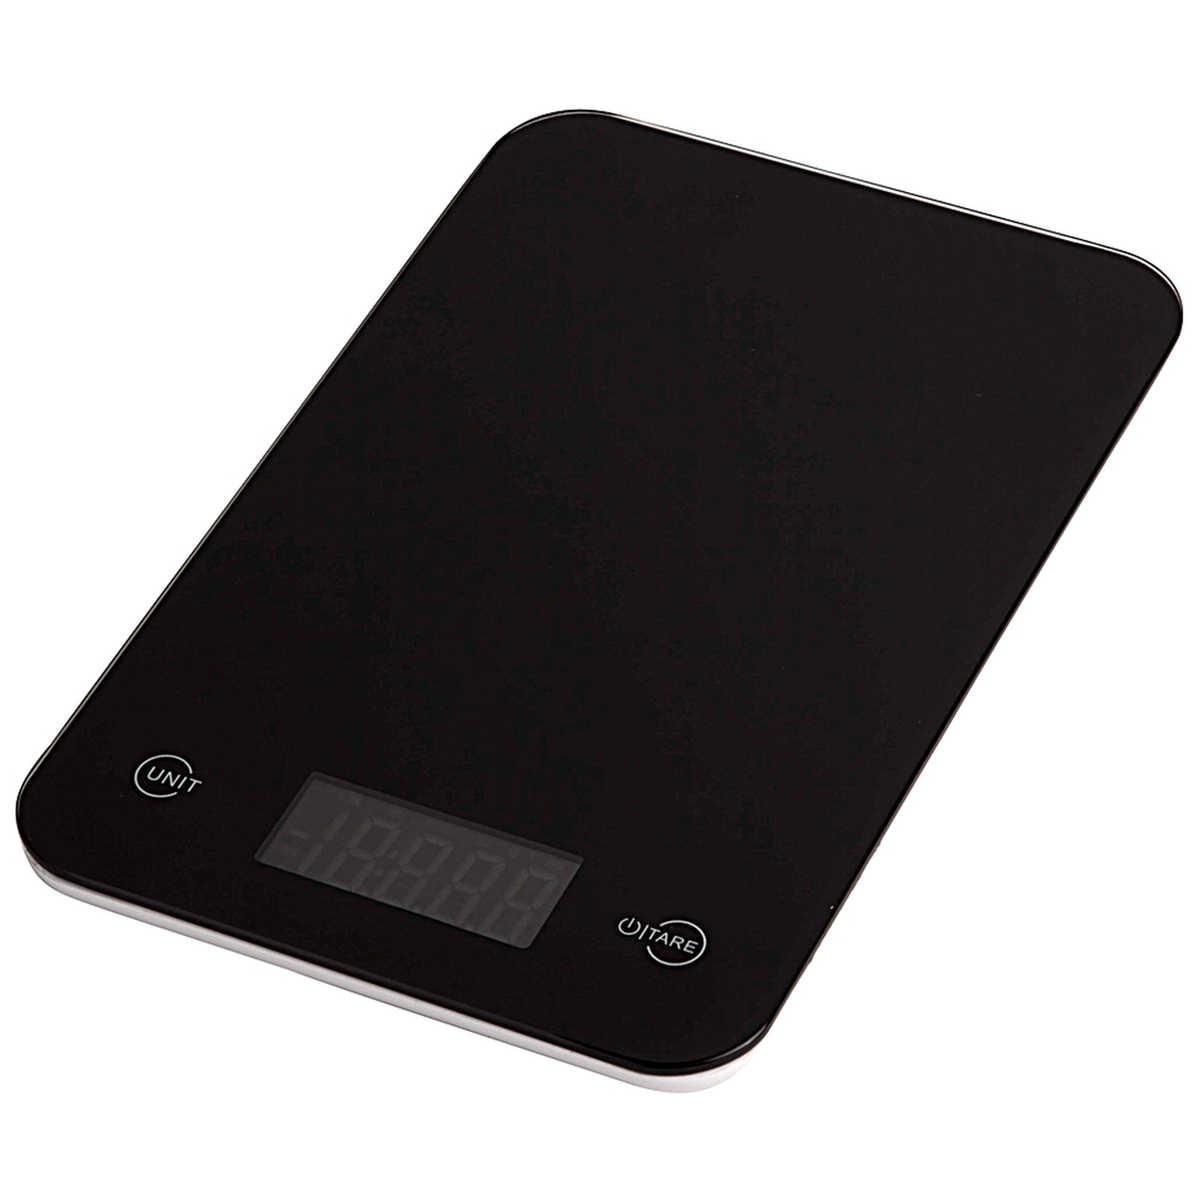 Luggage Scale Big W Propert 5 Kg Slimline Glass Digital Kitchen Scale Big W